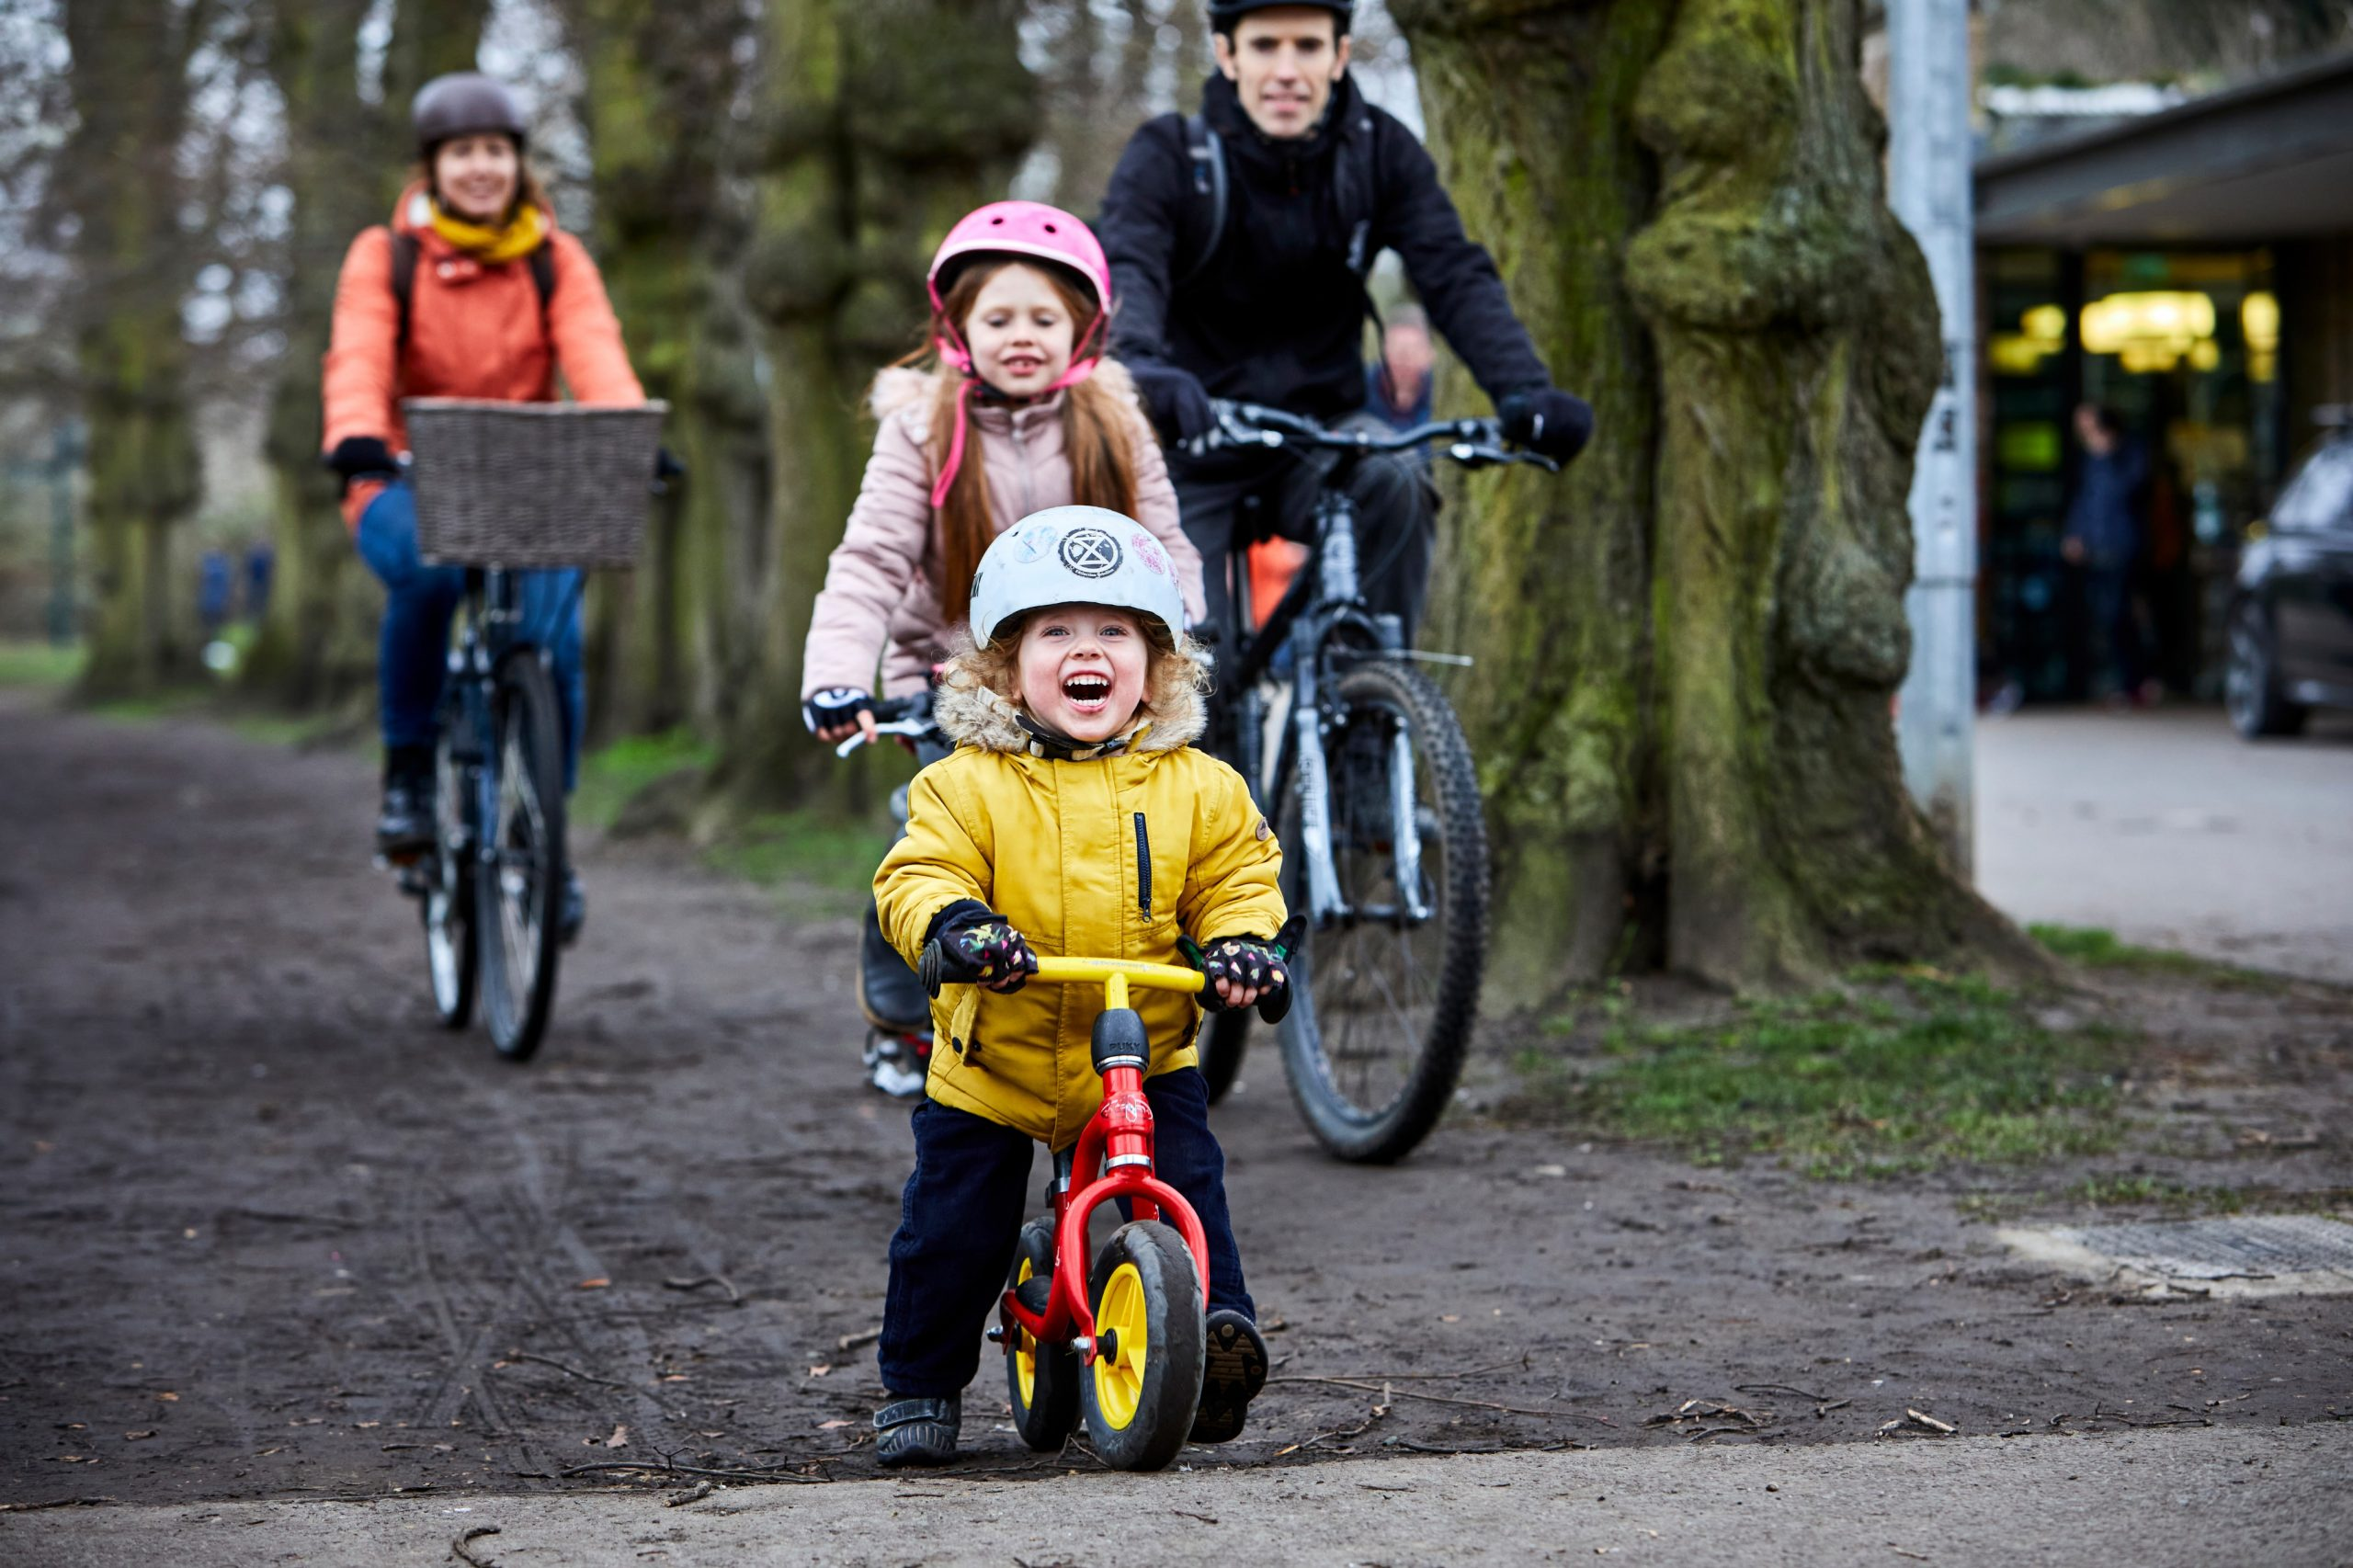 Cycle Training for Families